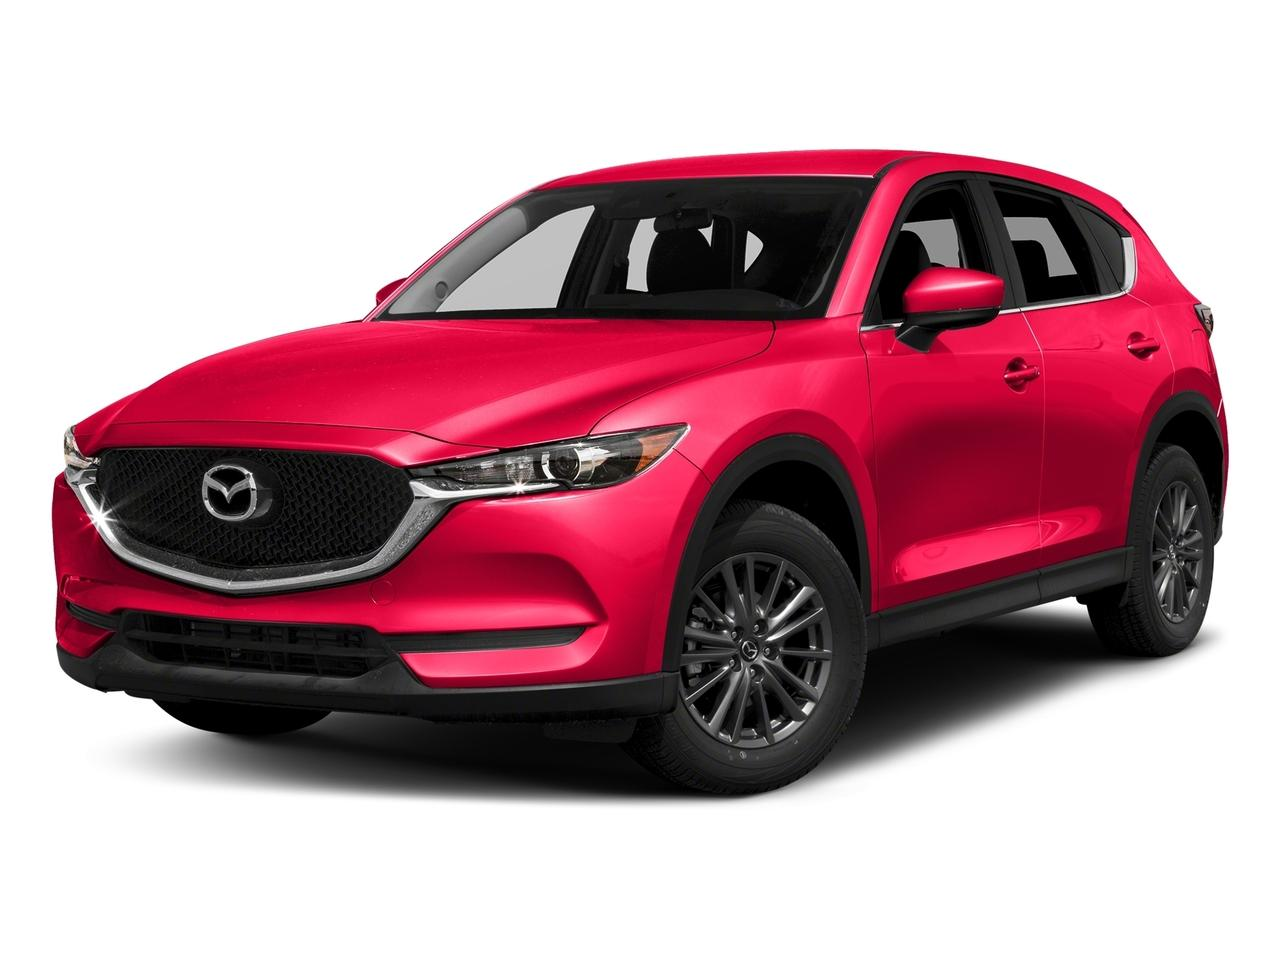 2017 Mazda CX-5 Vehicle Photo in Trevose, PA 19053